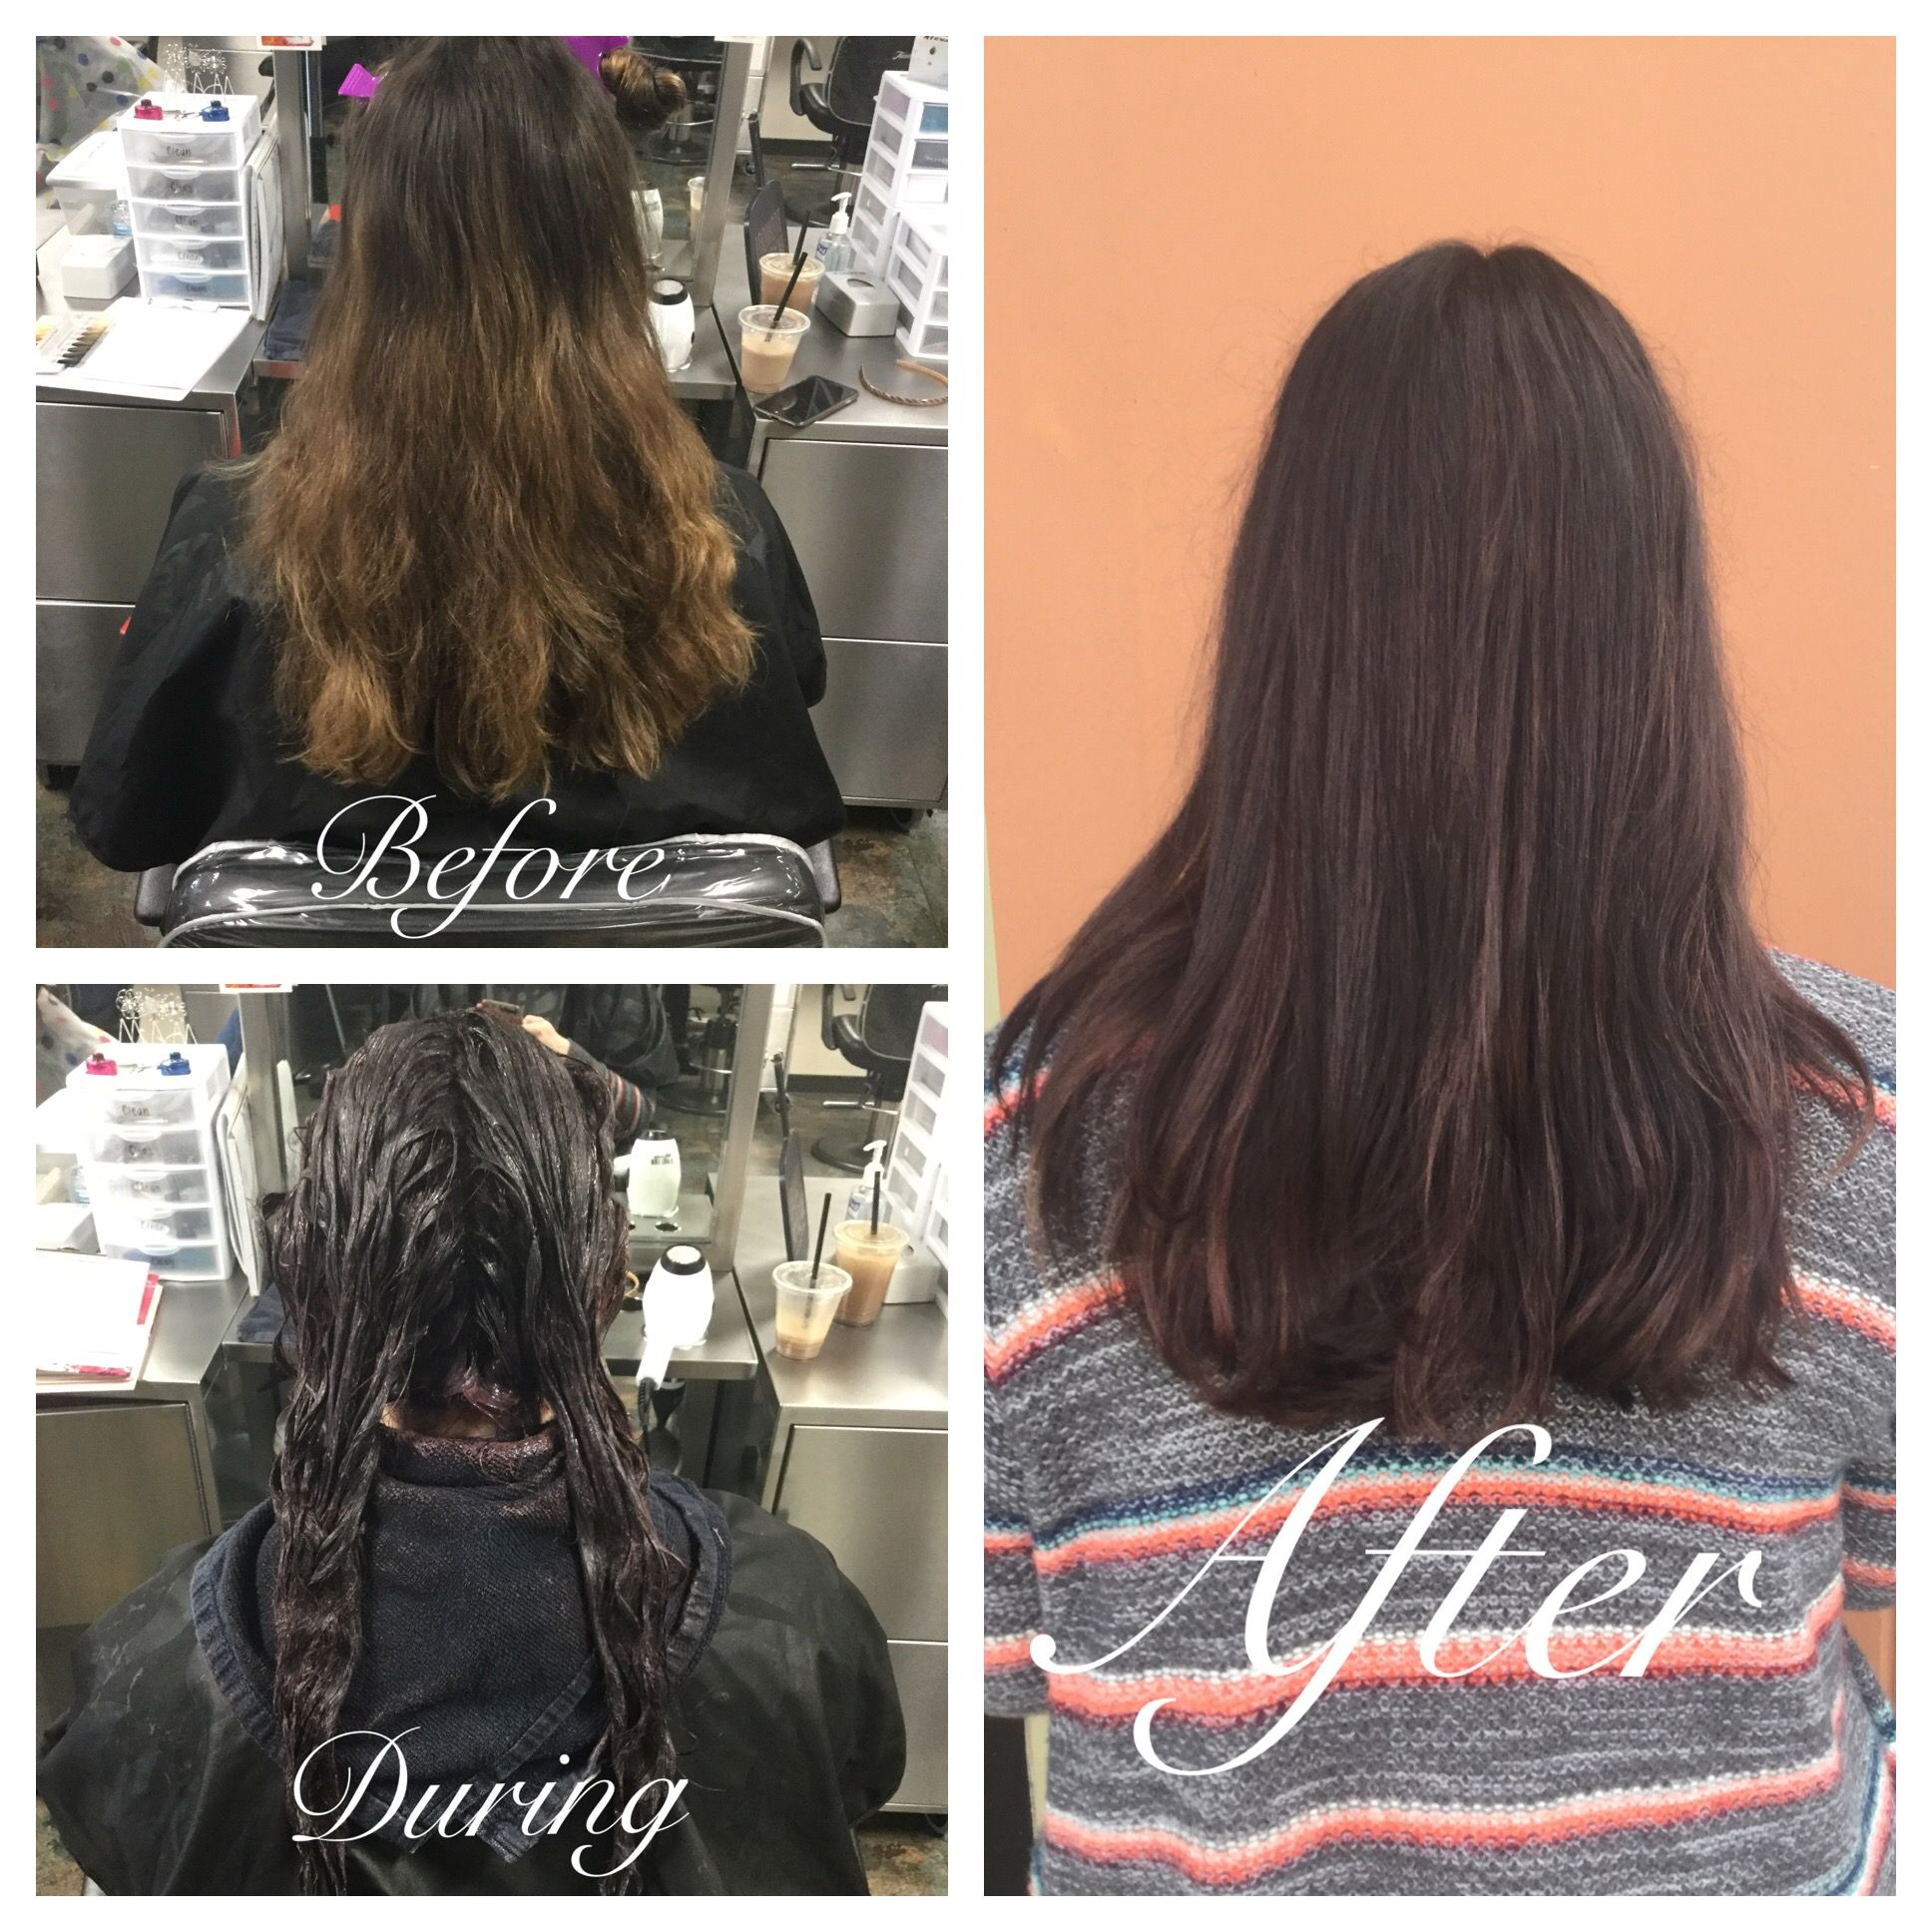 4 14 17 Virgin Tint Application Going Darker She Went From A Brassy Balayage To A Darker Chocolate Brown With Some Warm Long Hair Styles Balayage Hair Color